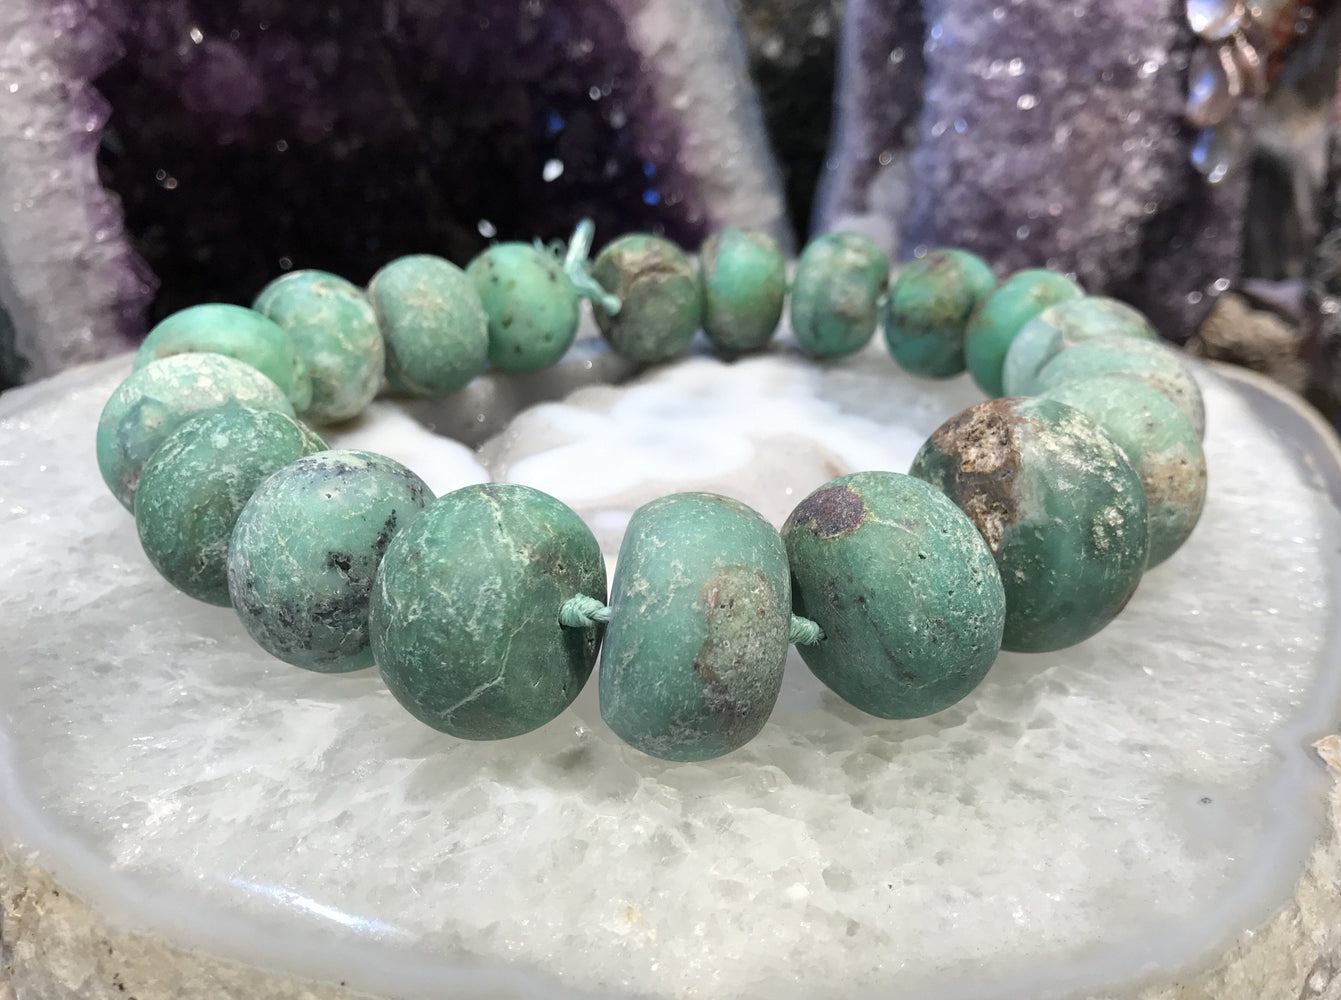 25-32mm Rough Natural Chrysoprase Rondelle Gemstone Beads #1